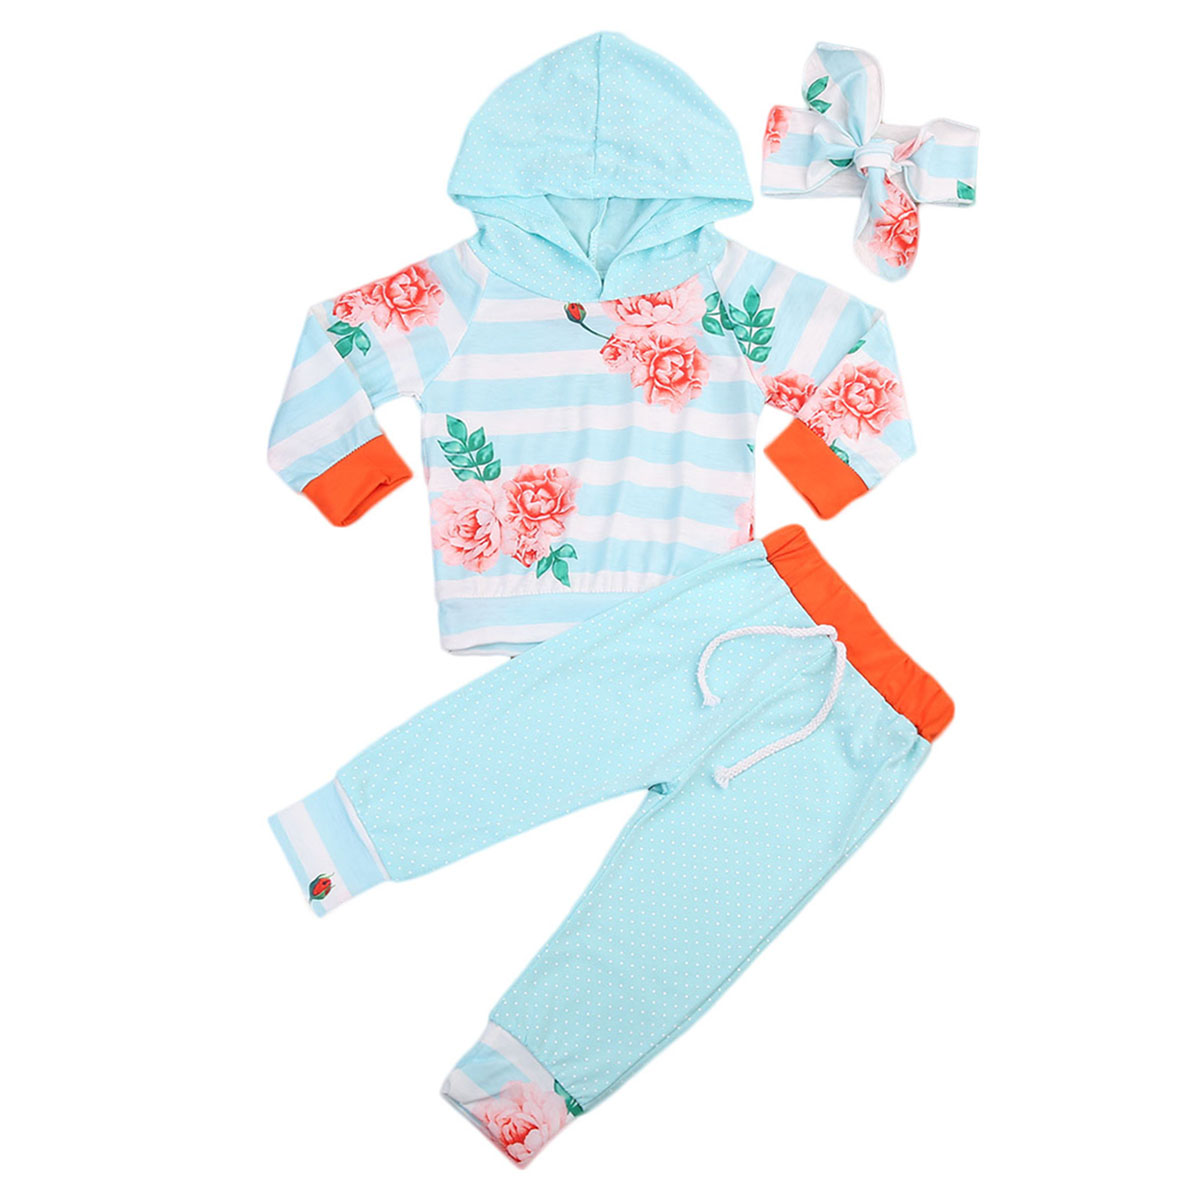 Adorable Newborn Infant Baby Girls Clothes Floral Long Sleeve Hoodie Tops+Long Pants+Headwear Outfits Cotton Autumn Baby Sets